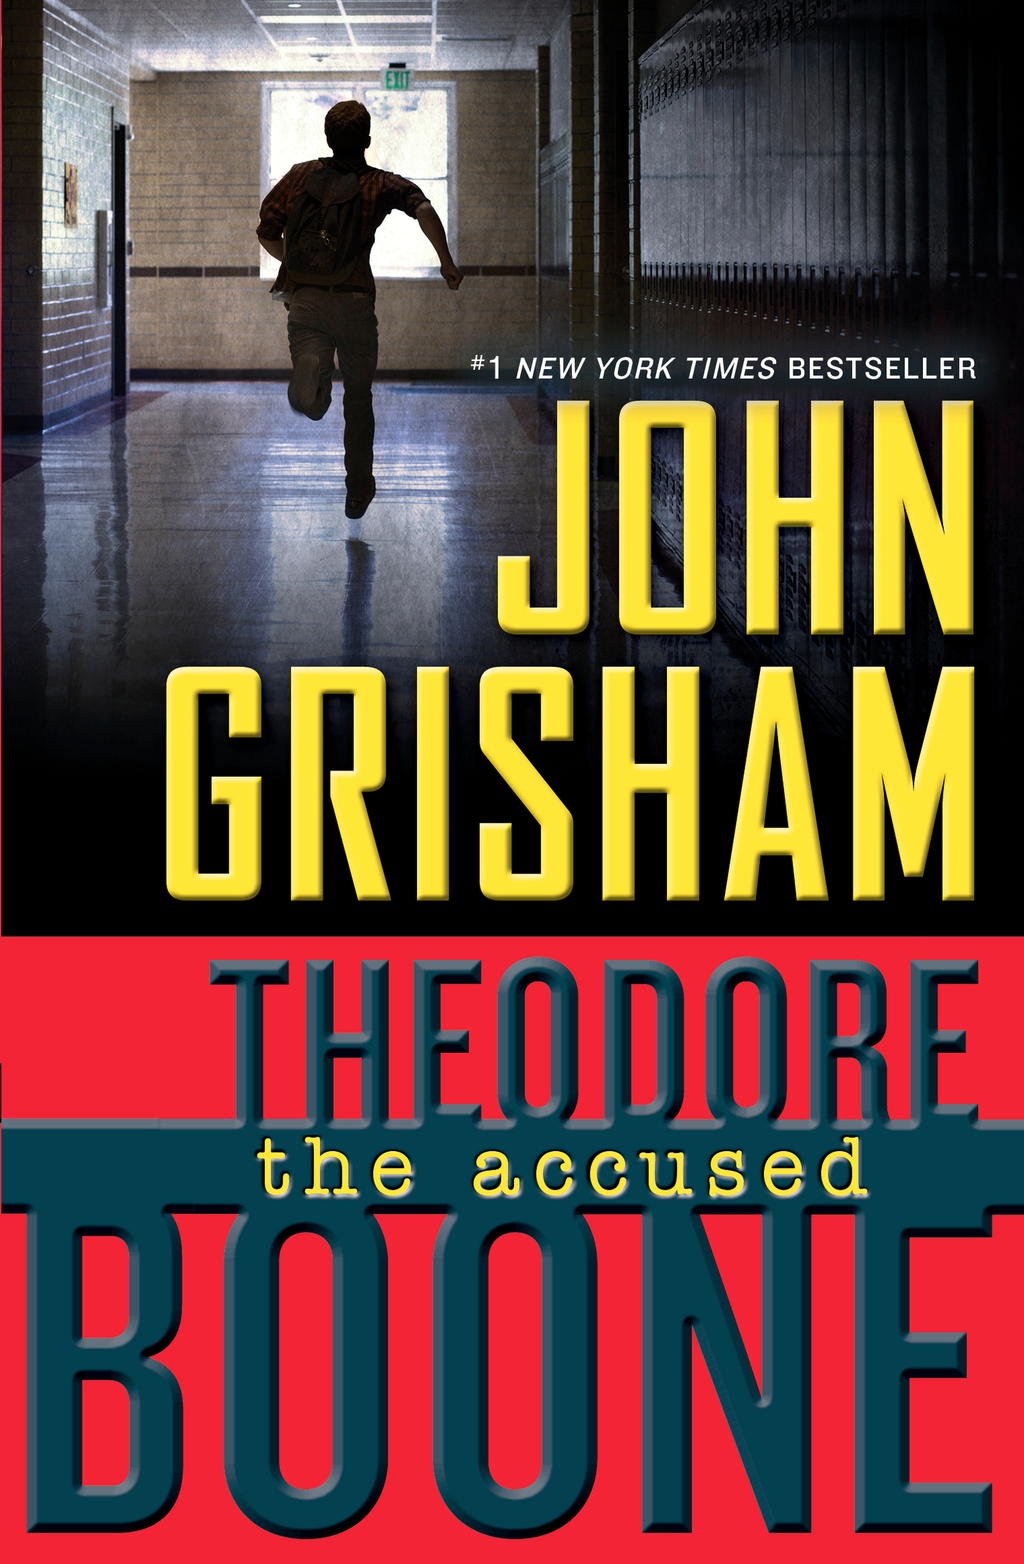 Theodore Boone: The Accused By: John Grisham